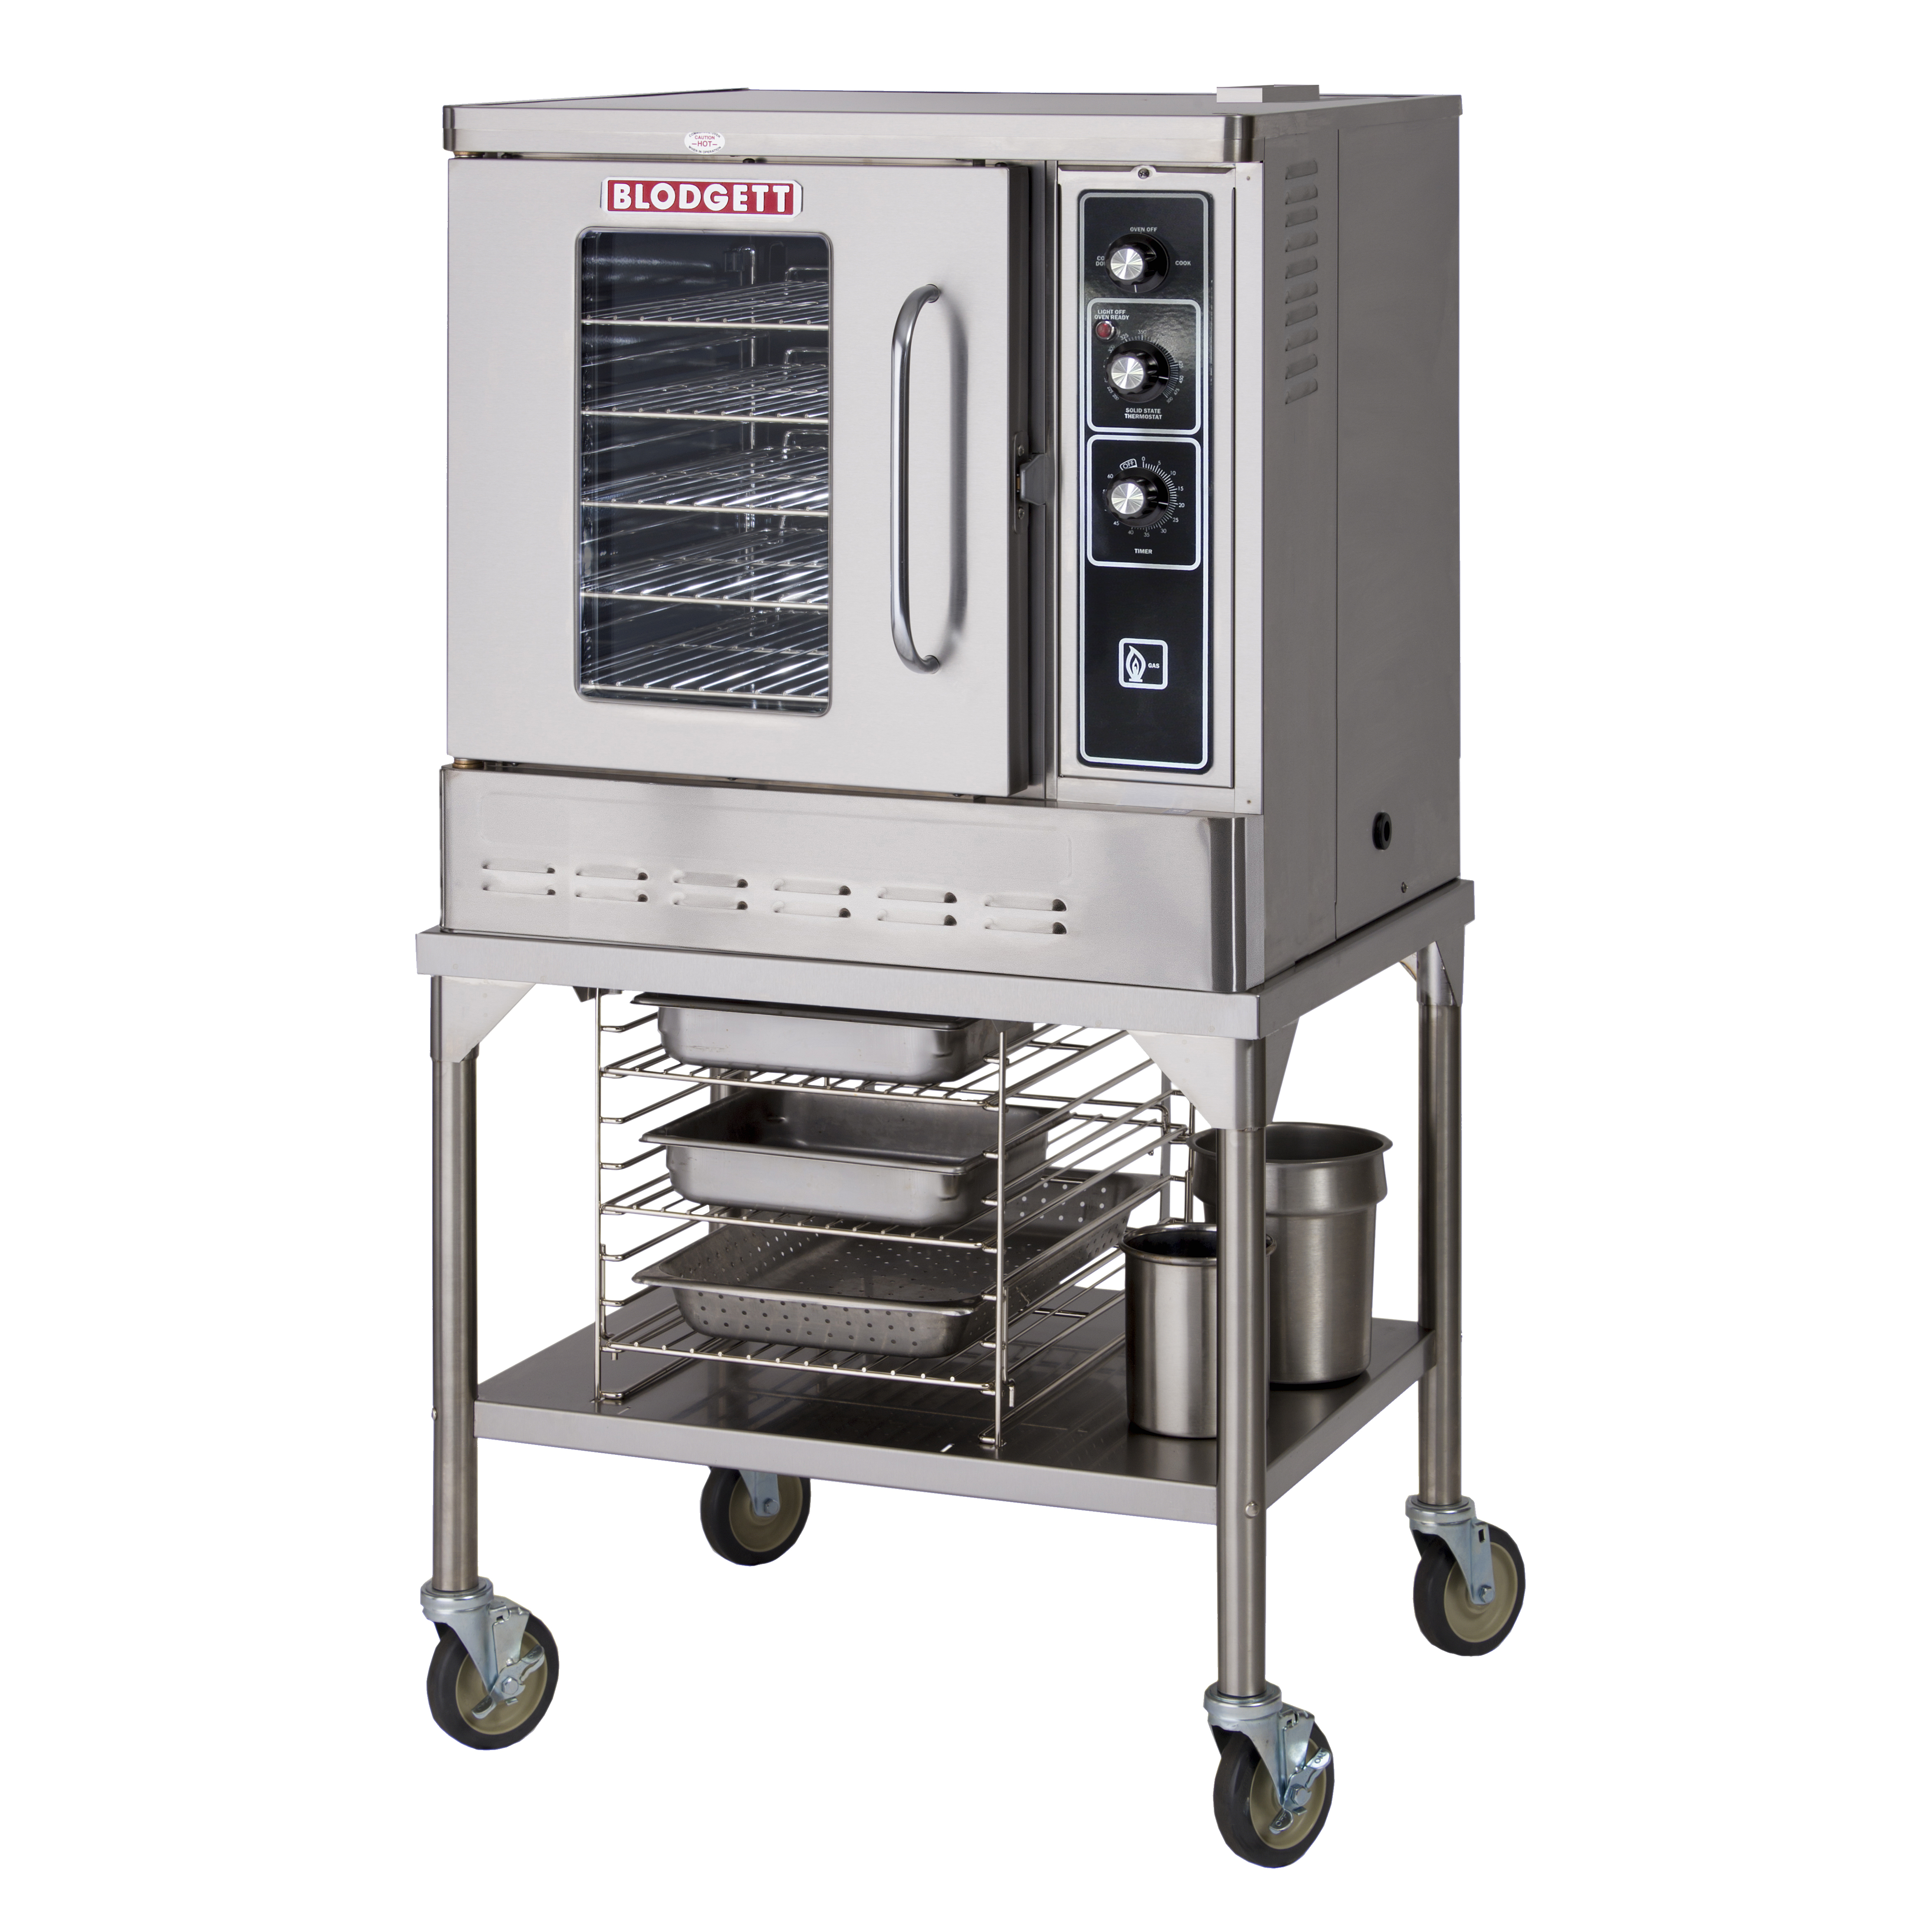 Blodgett DFG-50 ADDL convection oven, gas